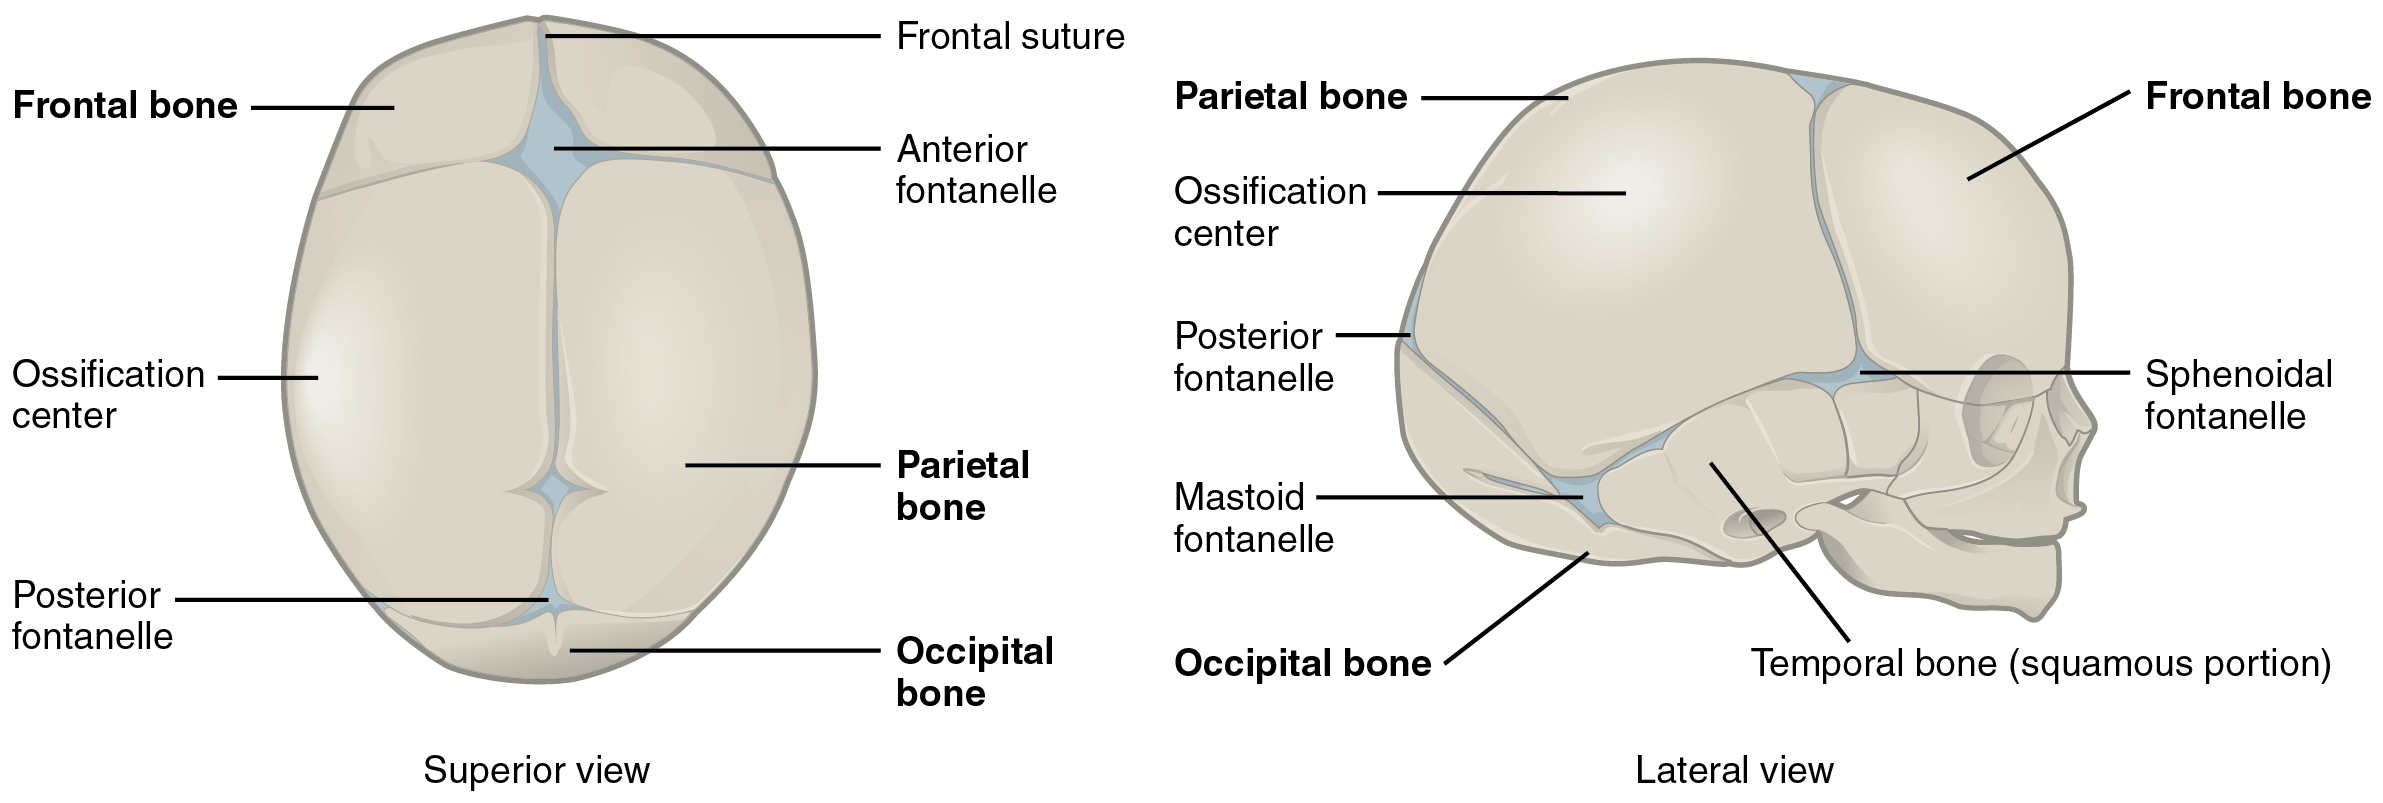 7 5 Embryonic Development Of The Axial Skeleton Anatomy